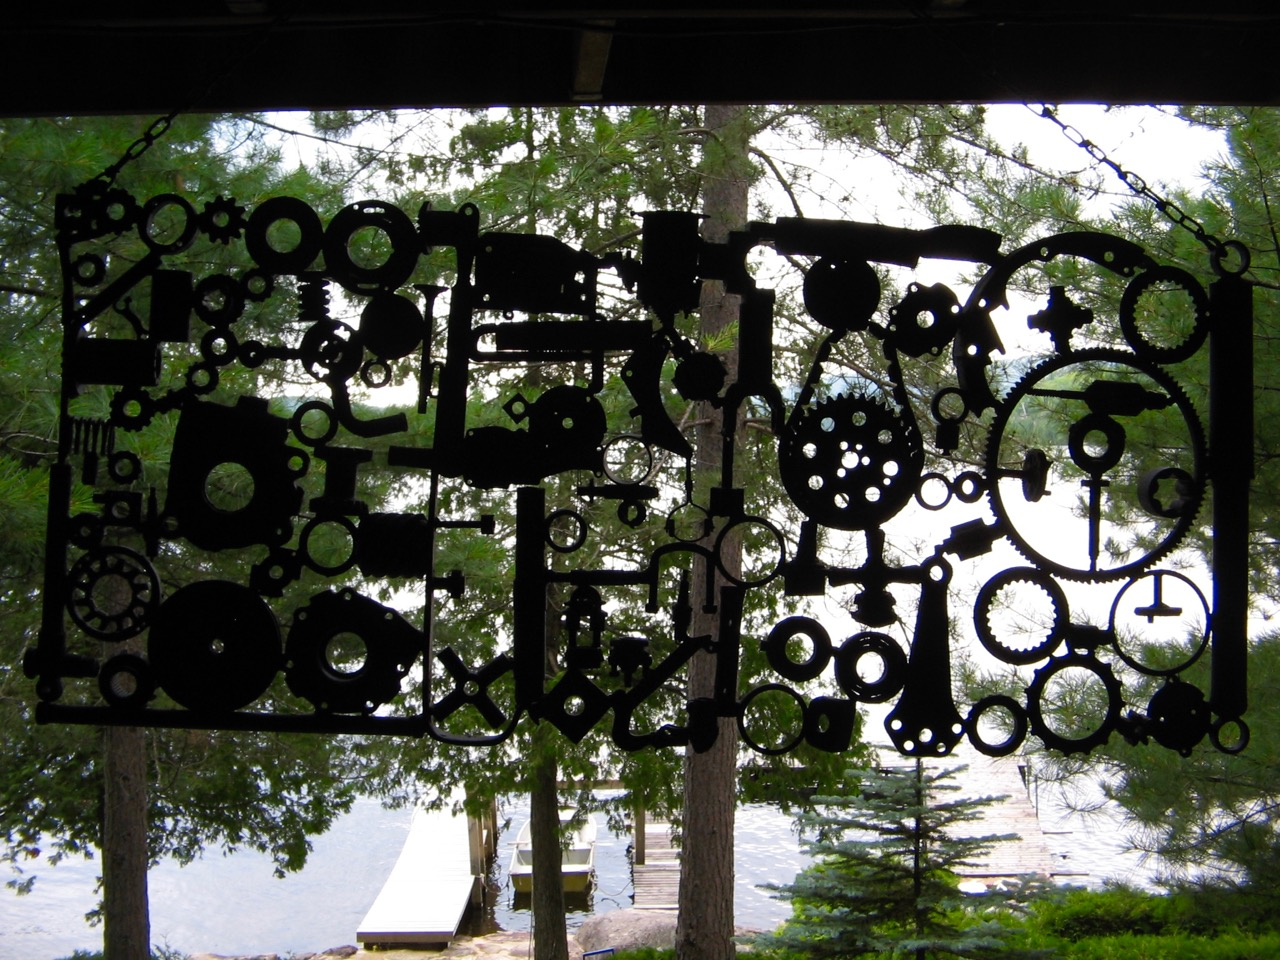 Metal sculpture at Lake Patrick